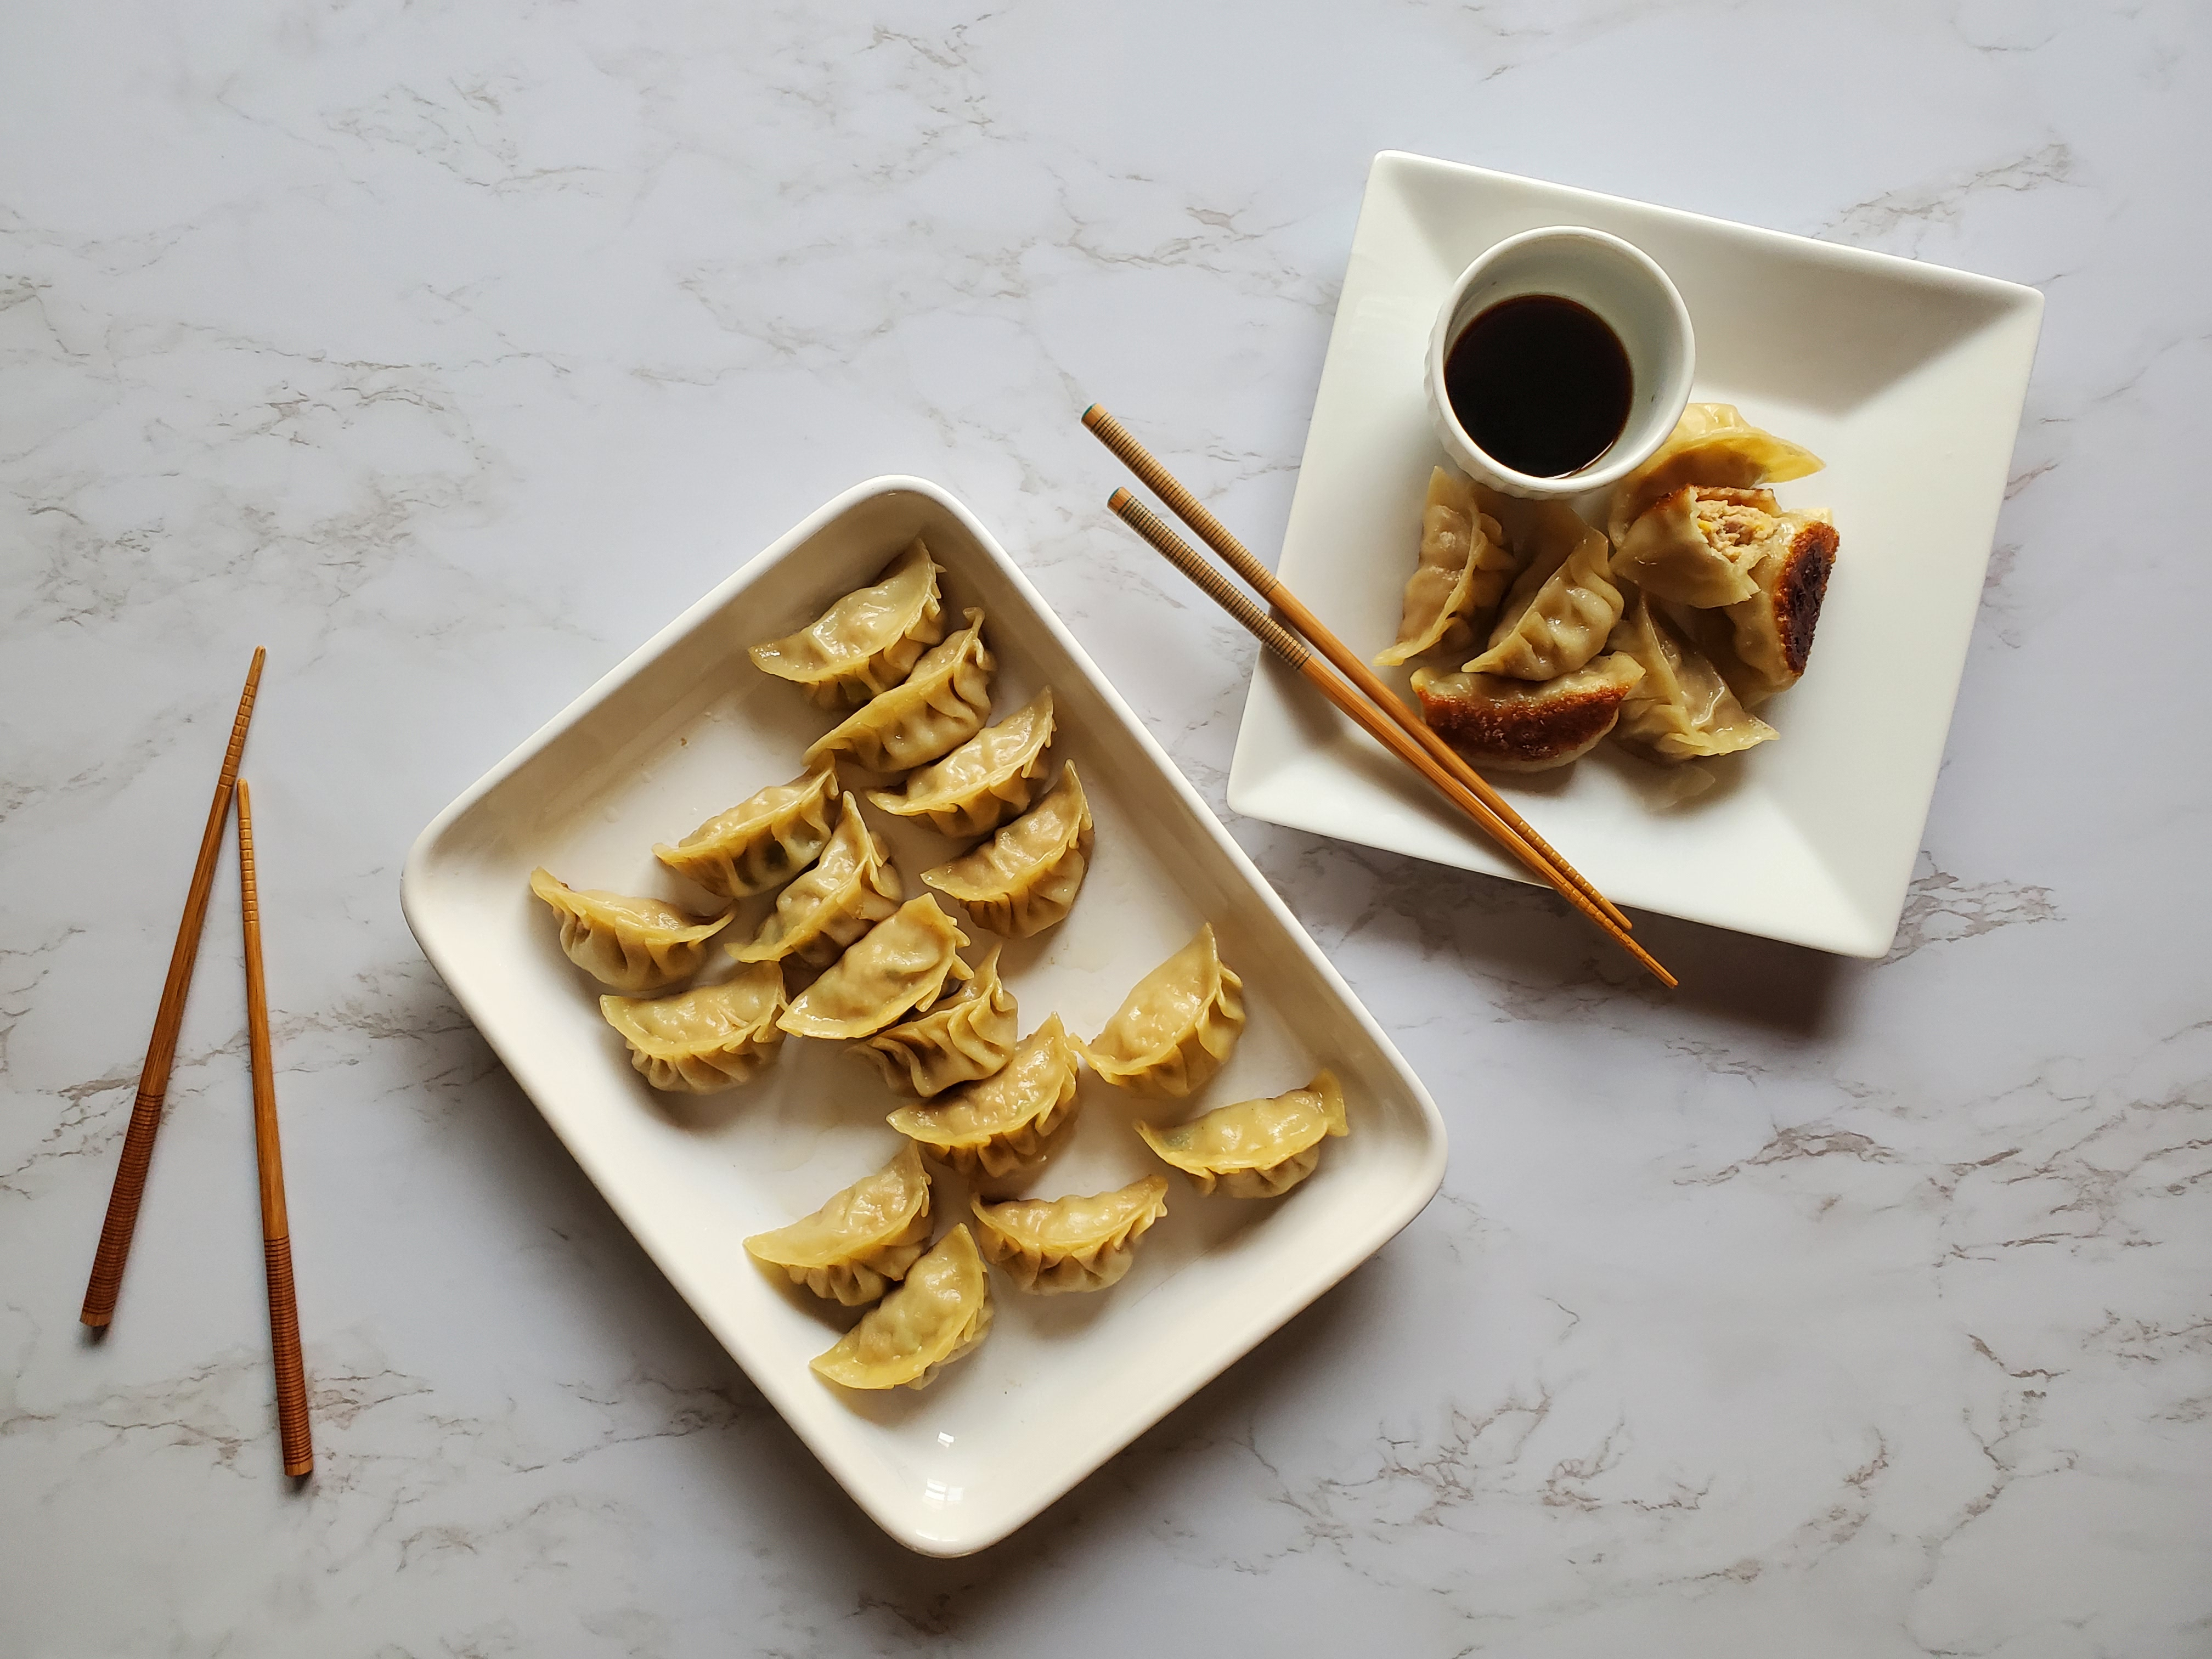 A large rectangular plater of Chinese Potstickers sits next to a square plate of potstickers with a small bowl of dark brown dumpling sauce. A pair of chopsticks rest on the square plate and on the left of the platter on the white marble coutertop.